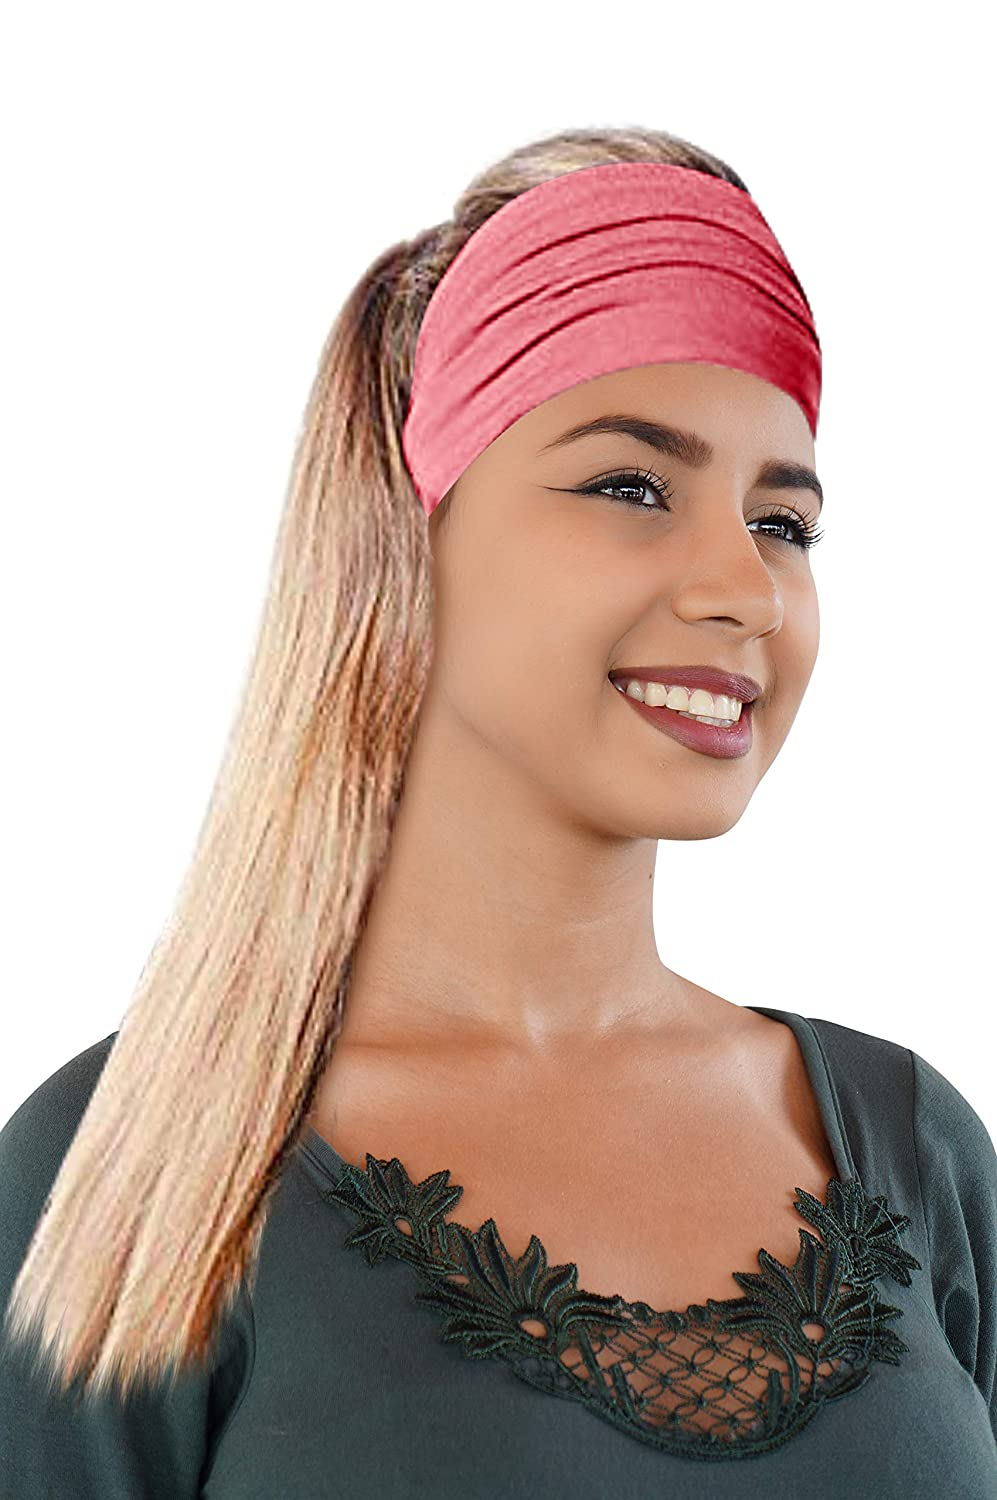 Novarena Original Multi Style Headband For Women Yoga Fashion Workout Running Athletic Travel. Wear Wide Turban Knotted + More | 15 Colors (Baby Pink)